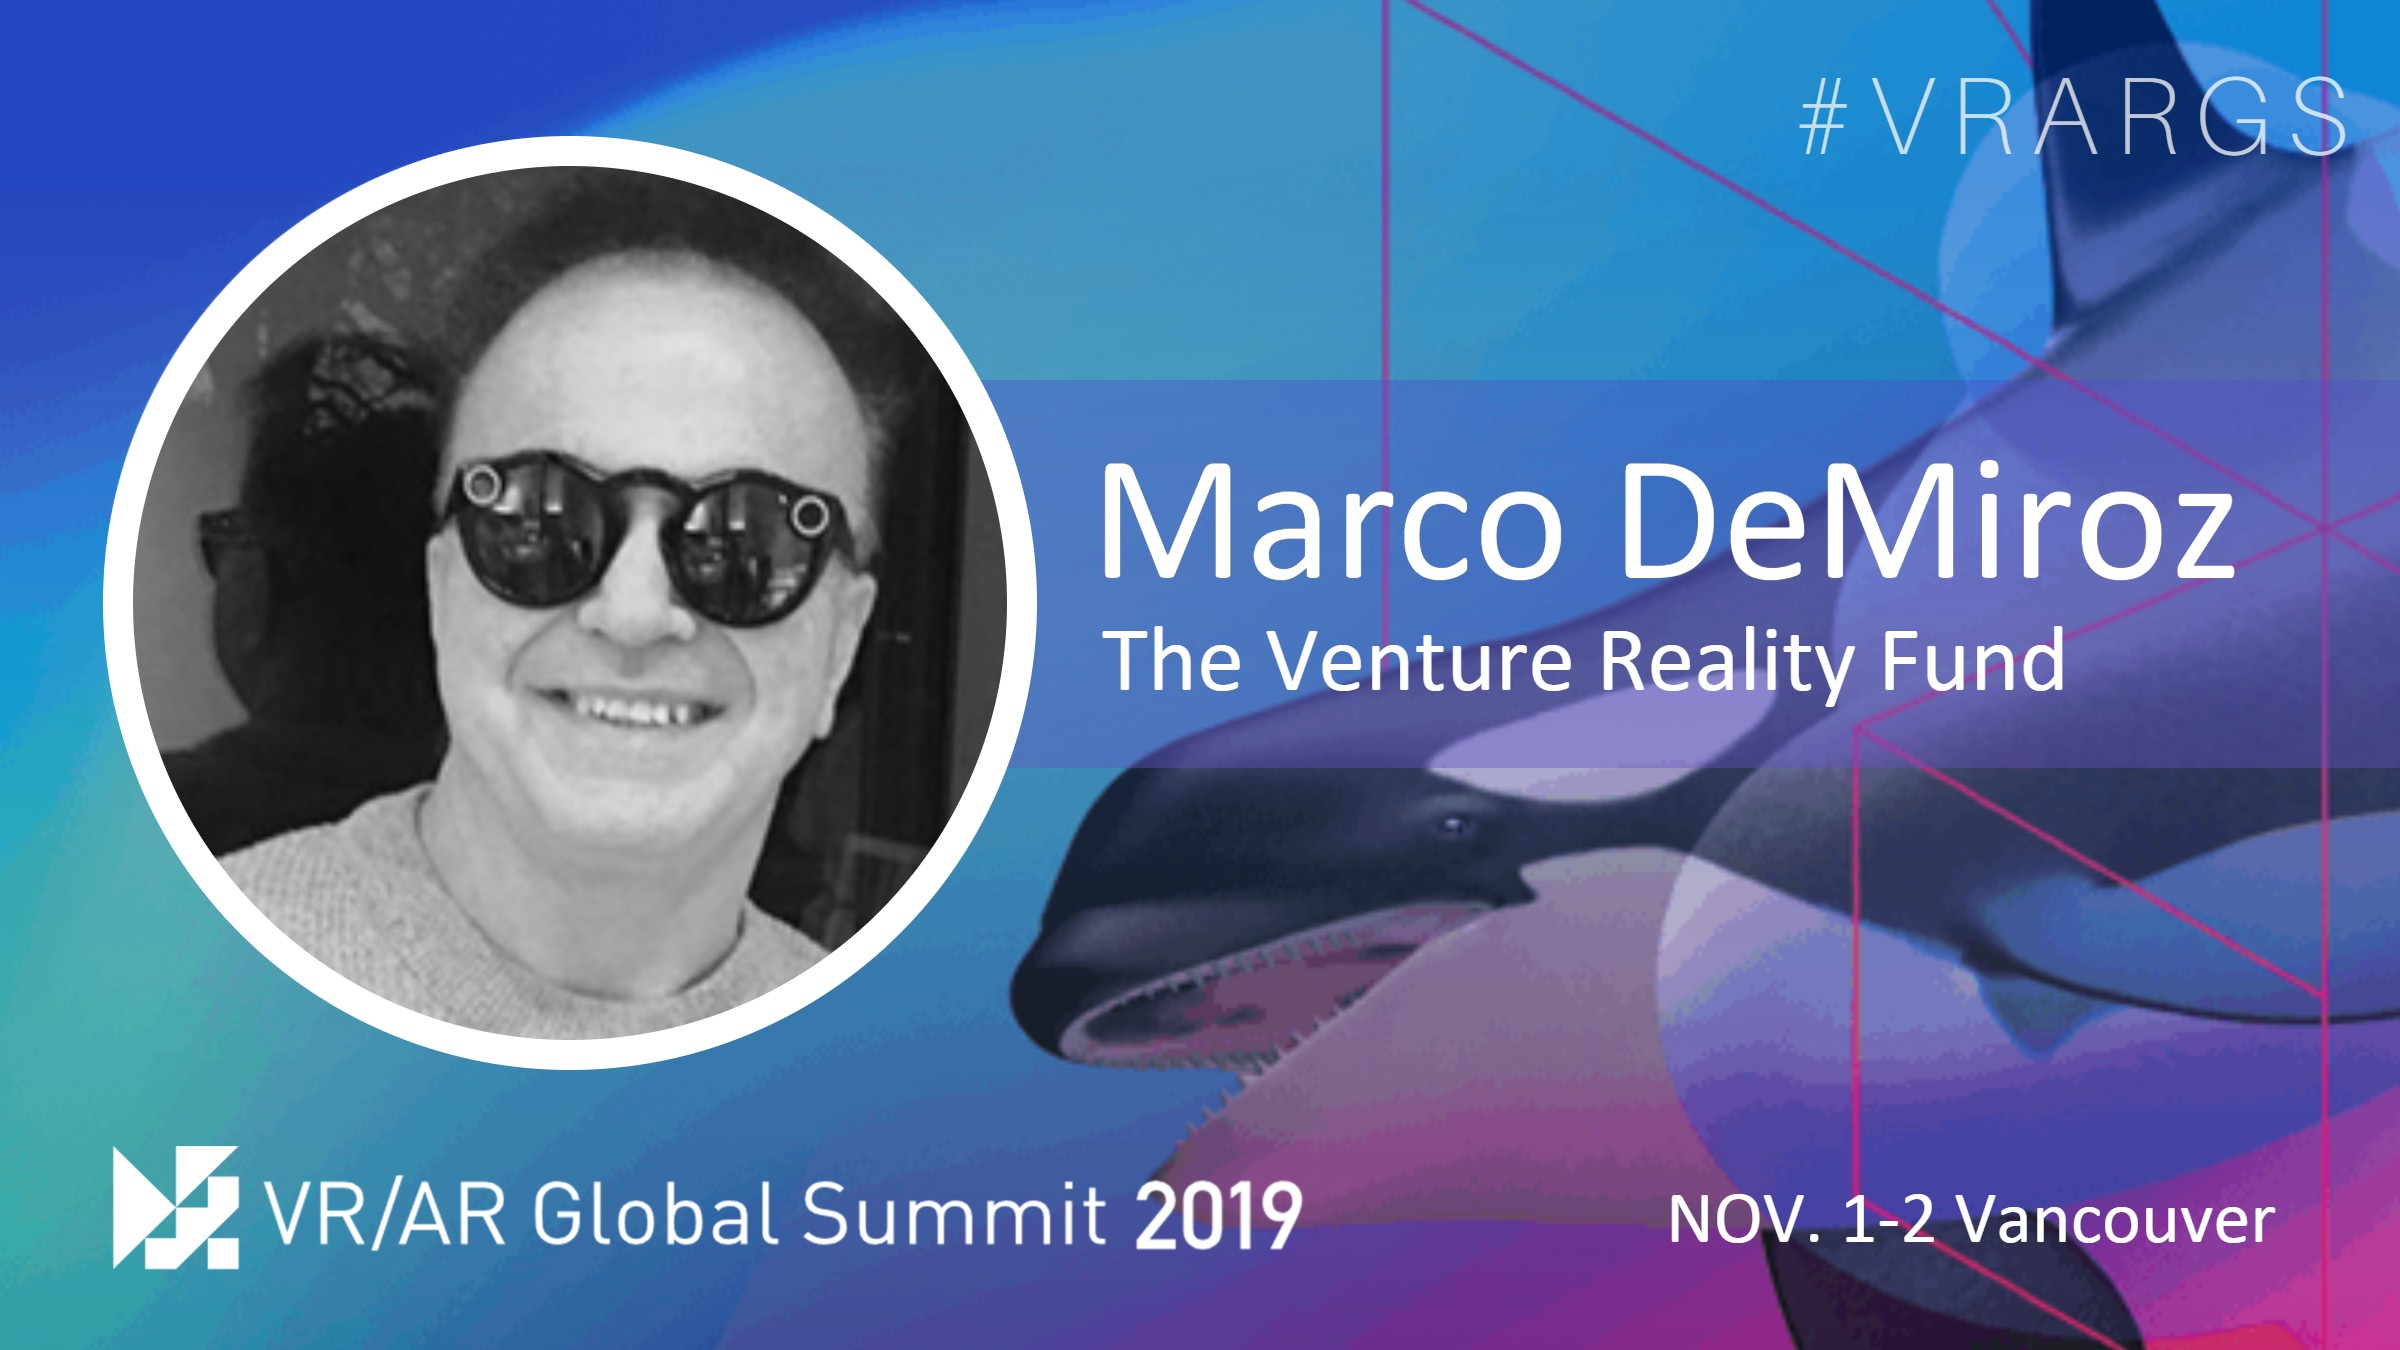 HighRes-Marco-DeMiroz-The-Venture-Reality-Fund-VRARGS-VRAR-Global-Summit-Spatial-Computing-Vancouver-Women-In-XR.jpg